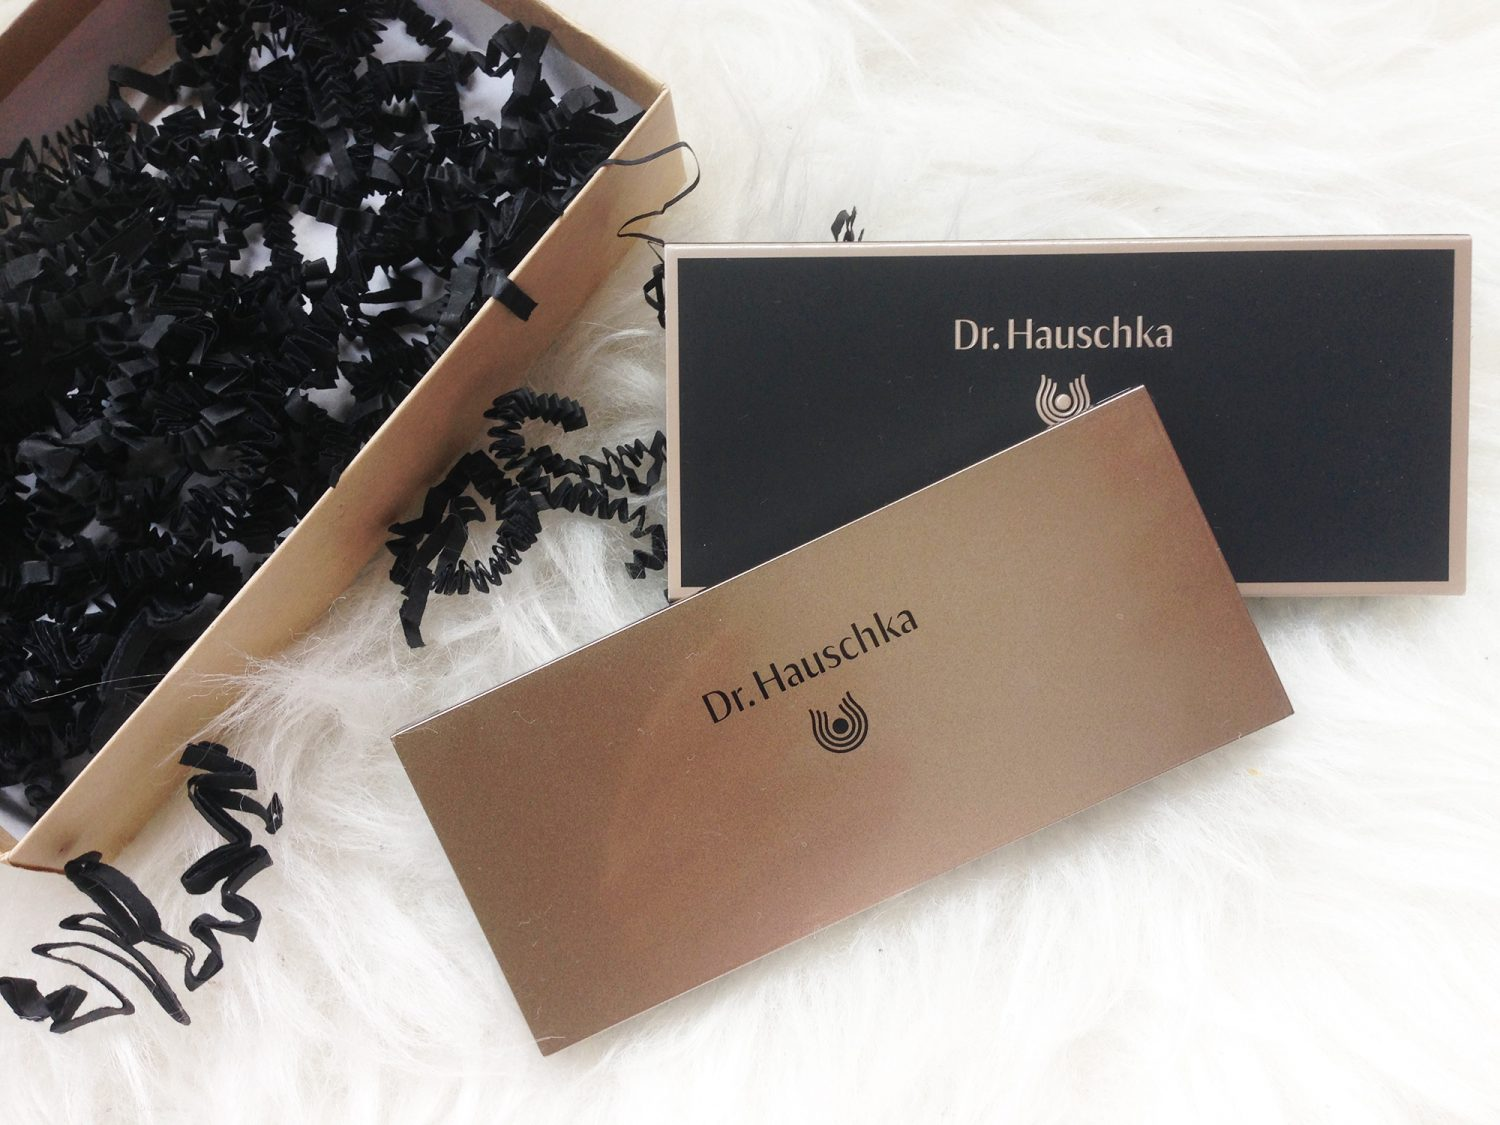 Dr. Hauschka Limited Edition Eyeshadow Palette & Look